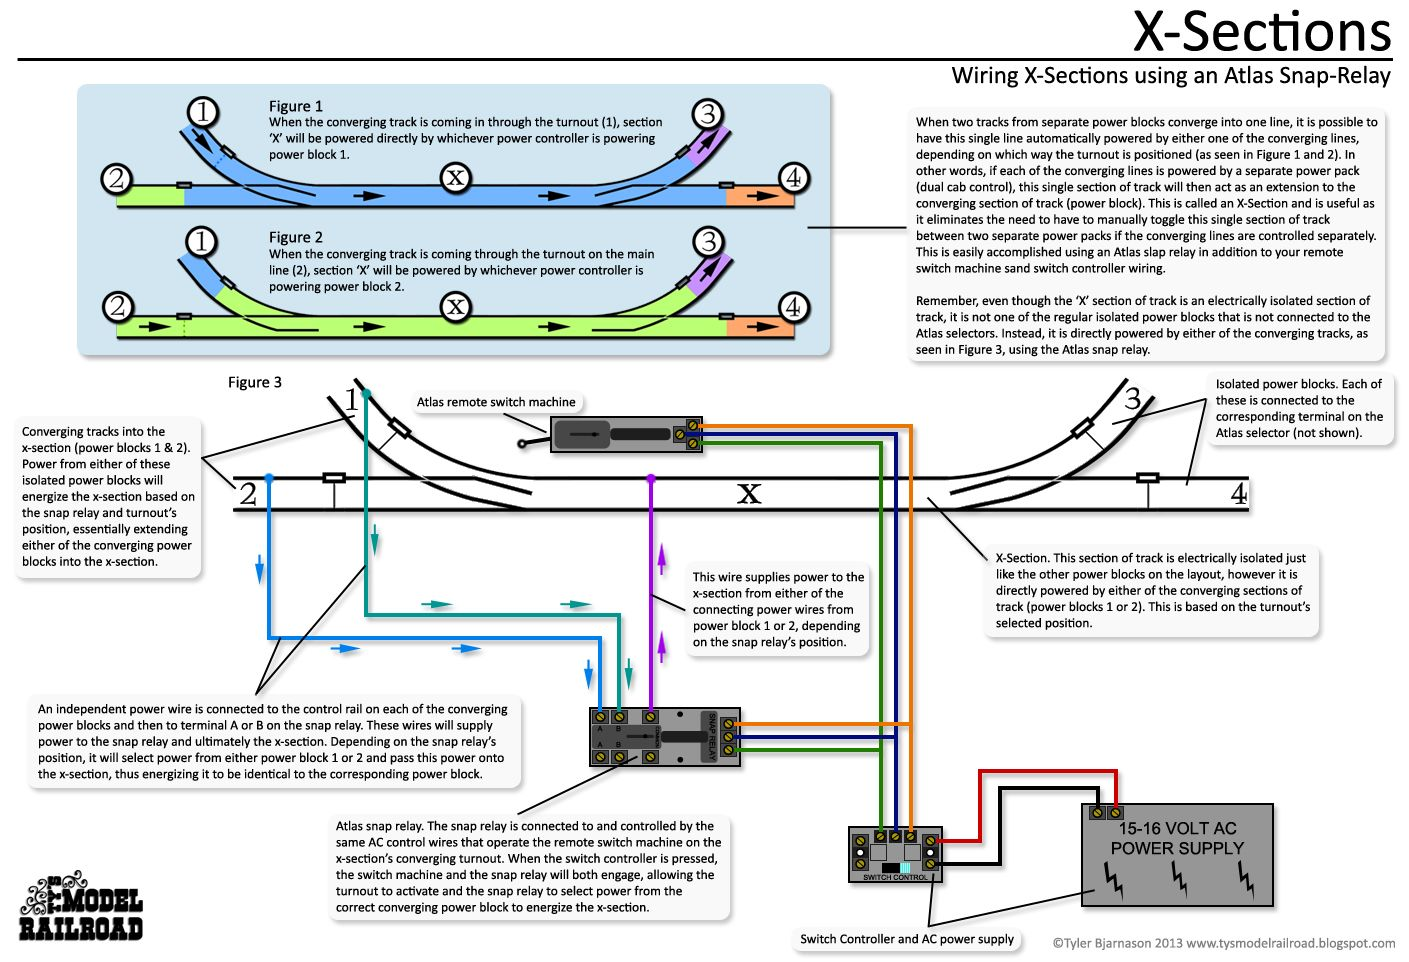 medium resolution of how to wire an x section using an atlas snap relay and existing atlas train track wiring atlas track wiring